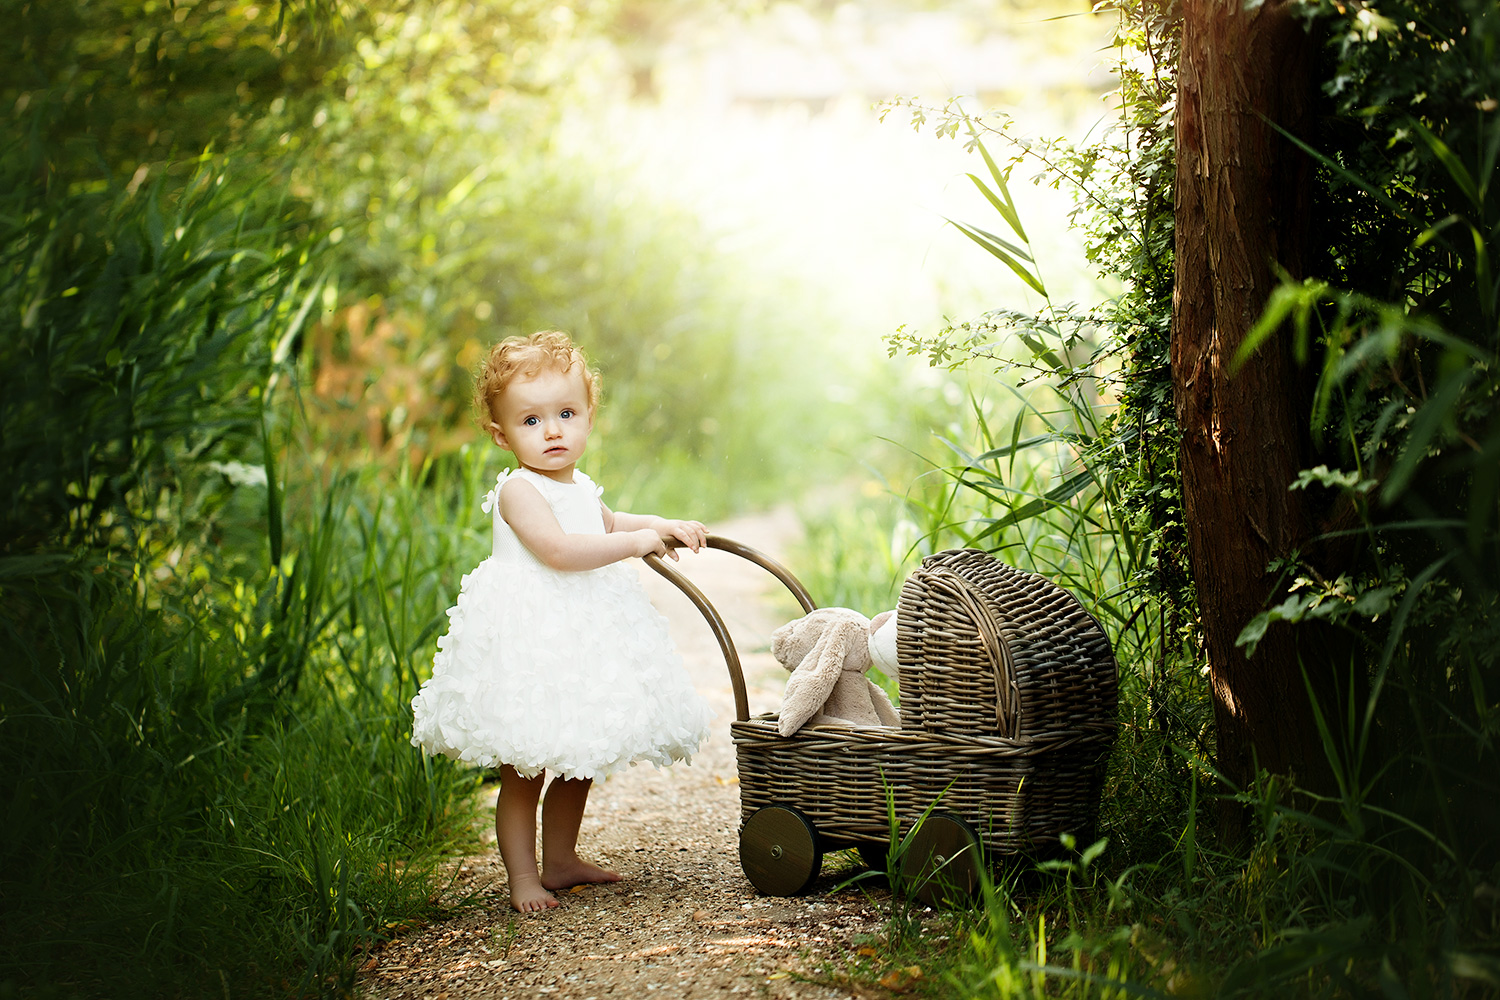 baby-fotoshoot-outdoor-baby-wagen